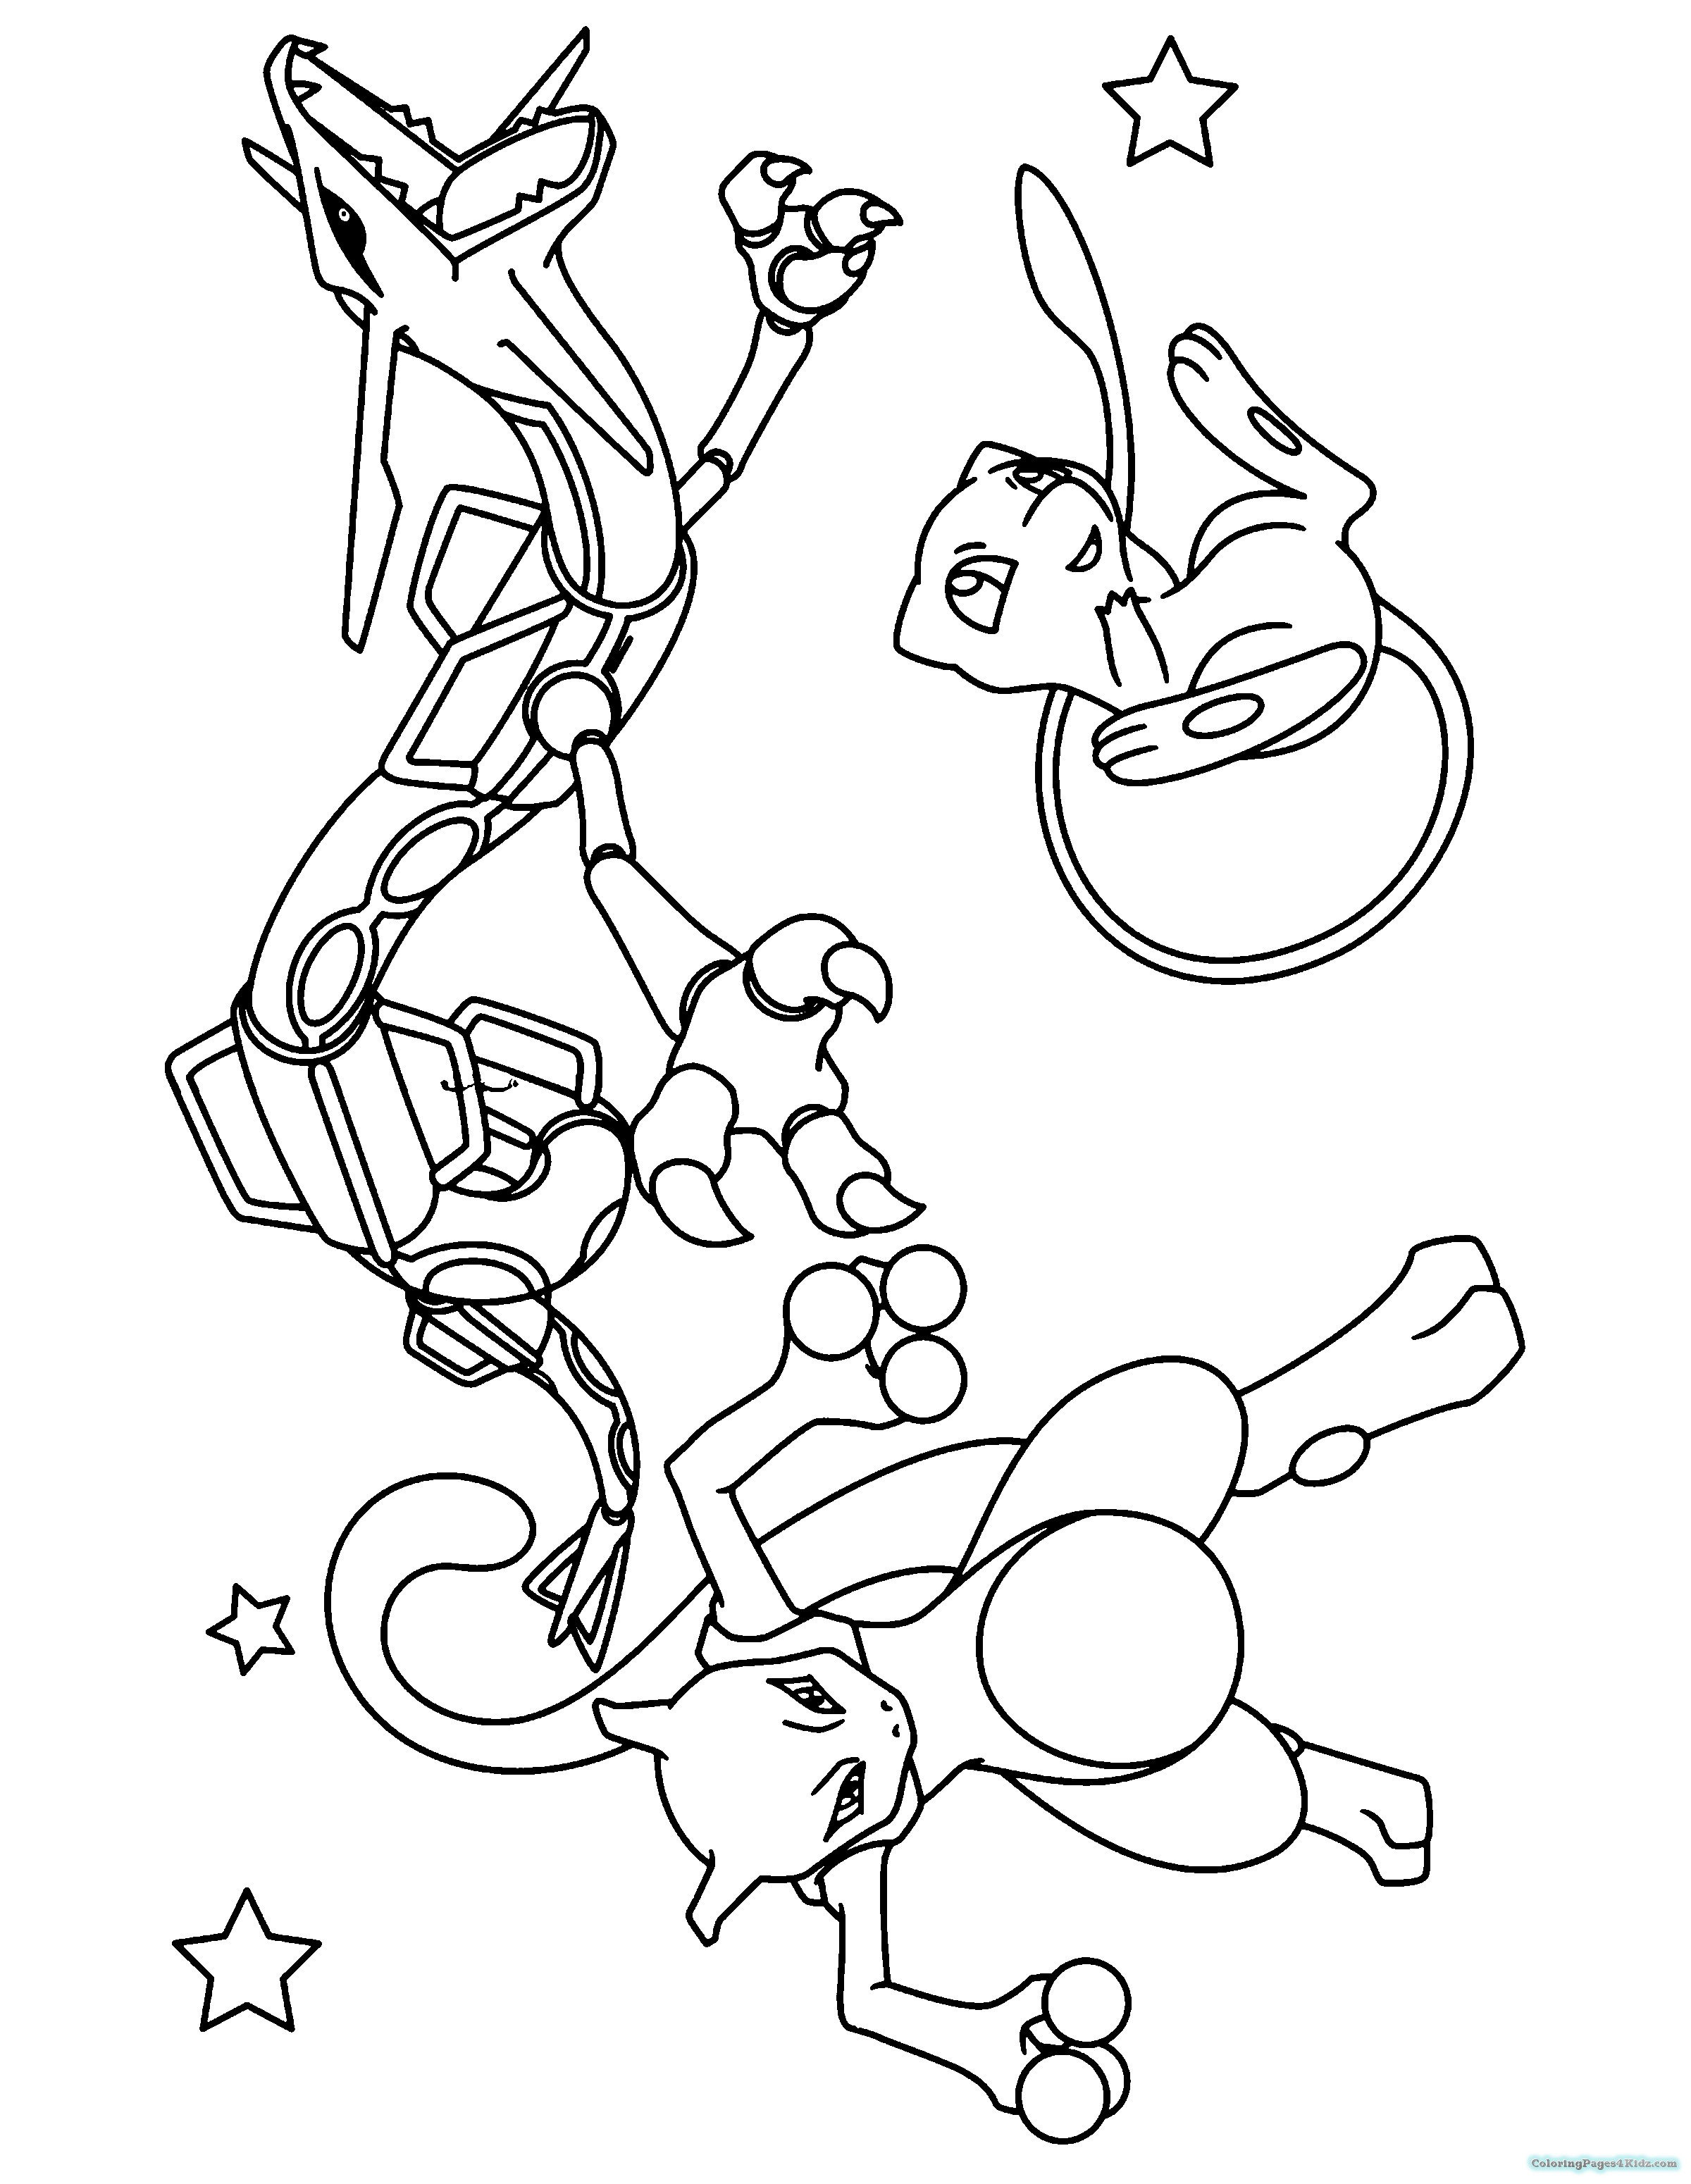 legendary pokemon colouring pages legendary pokemon drawing at getdrawings free download legendary colouring pokemon pages